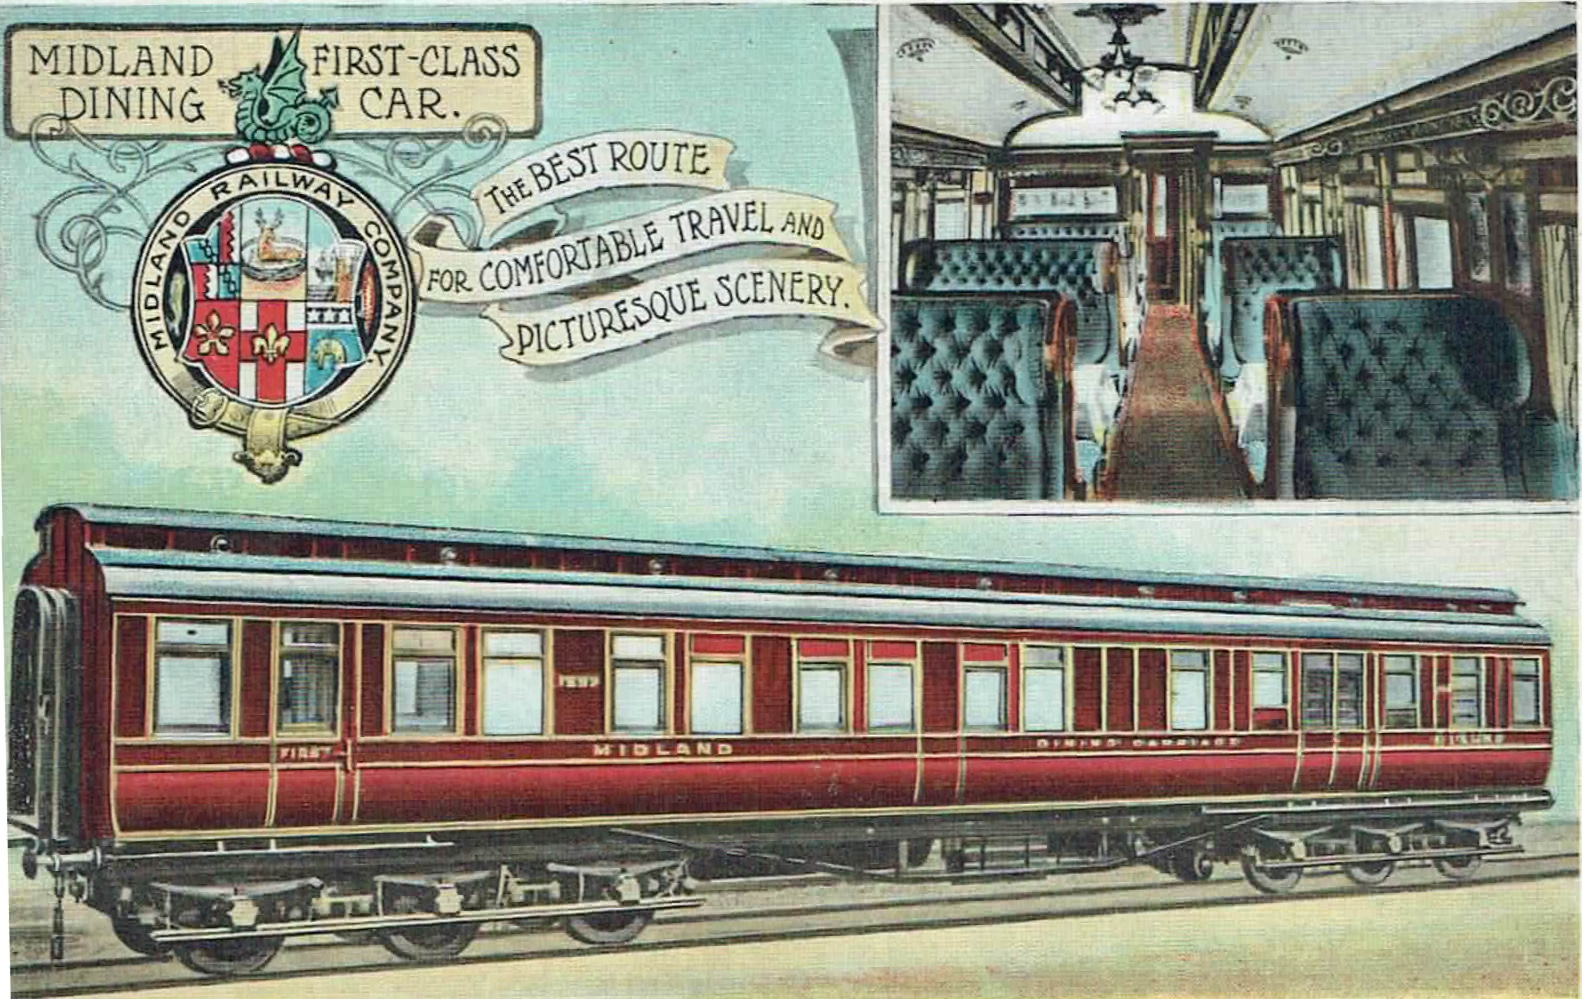 A postcard featuring a Midland Railway First Class dining car with both external and internal views.